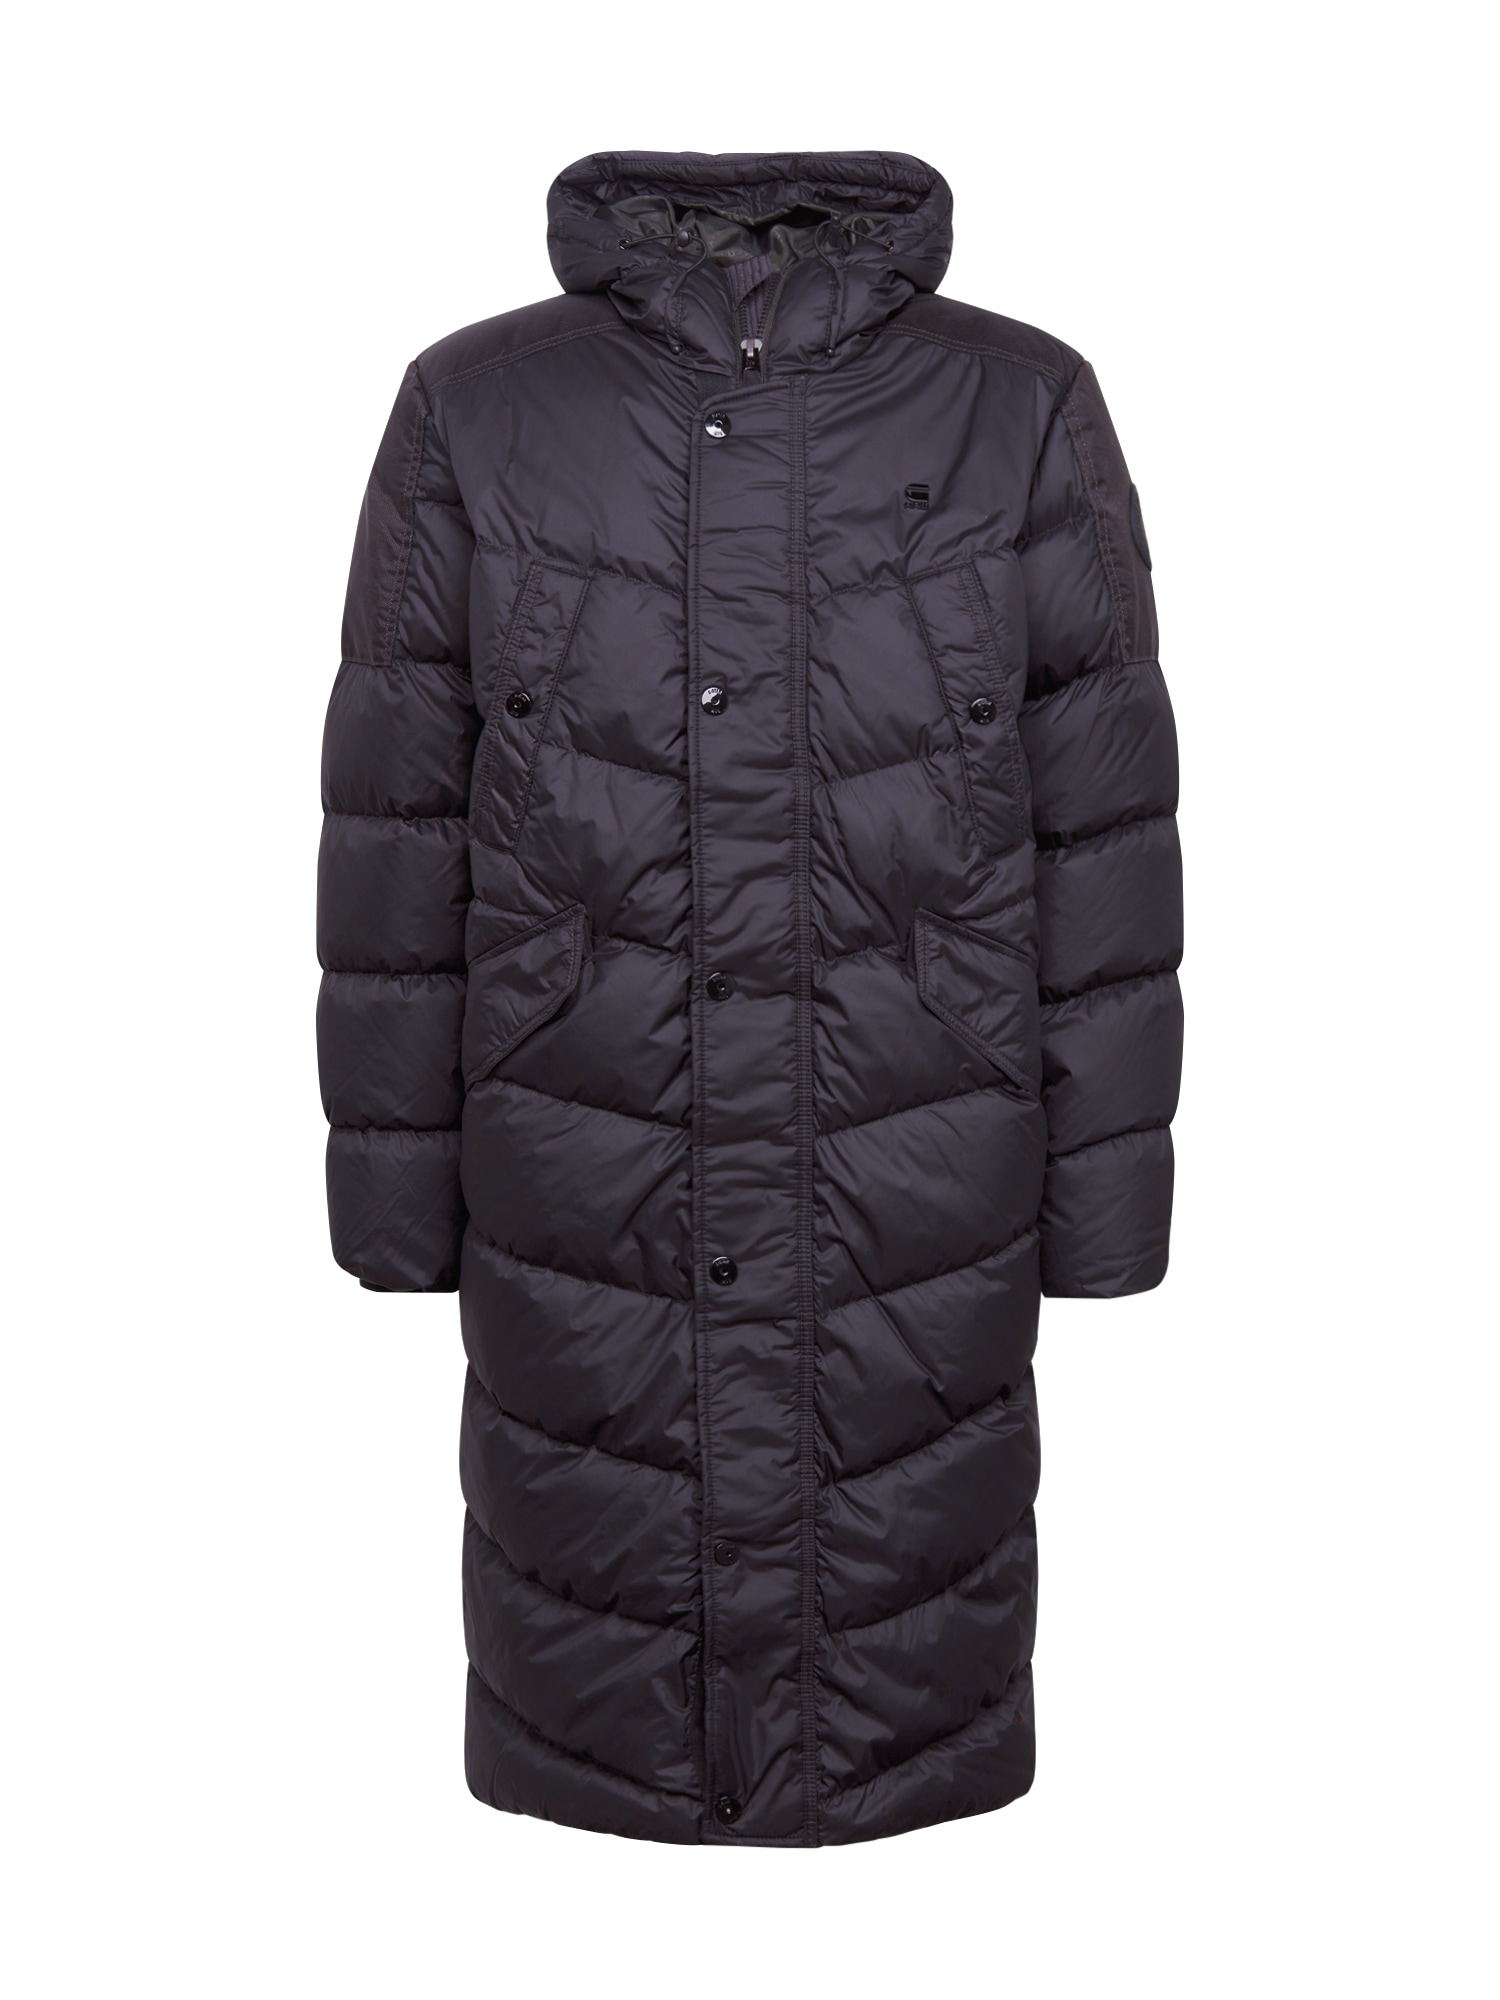 G-Star RAW Žieminis paltas 'Whistler down long parka' juoda